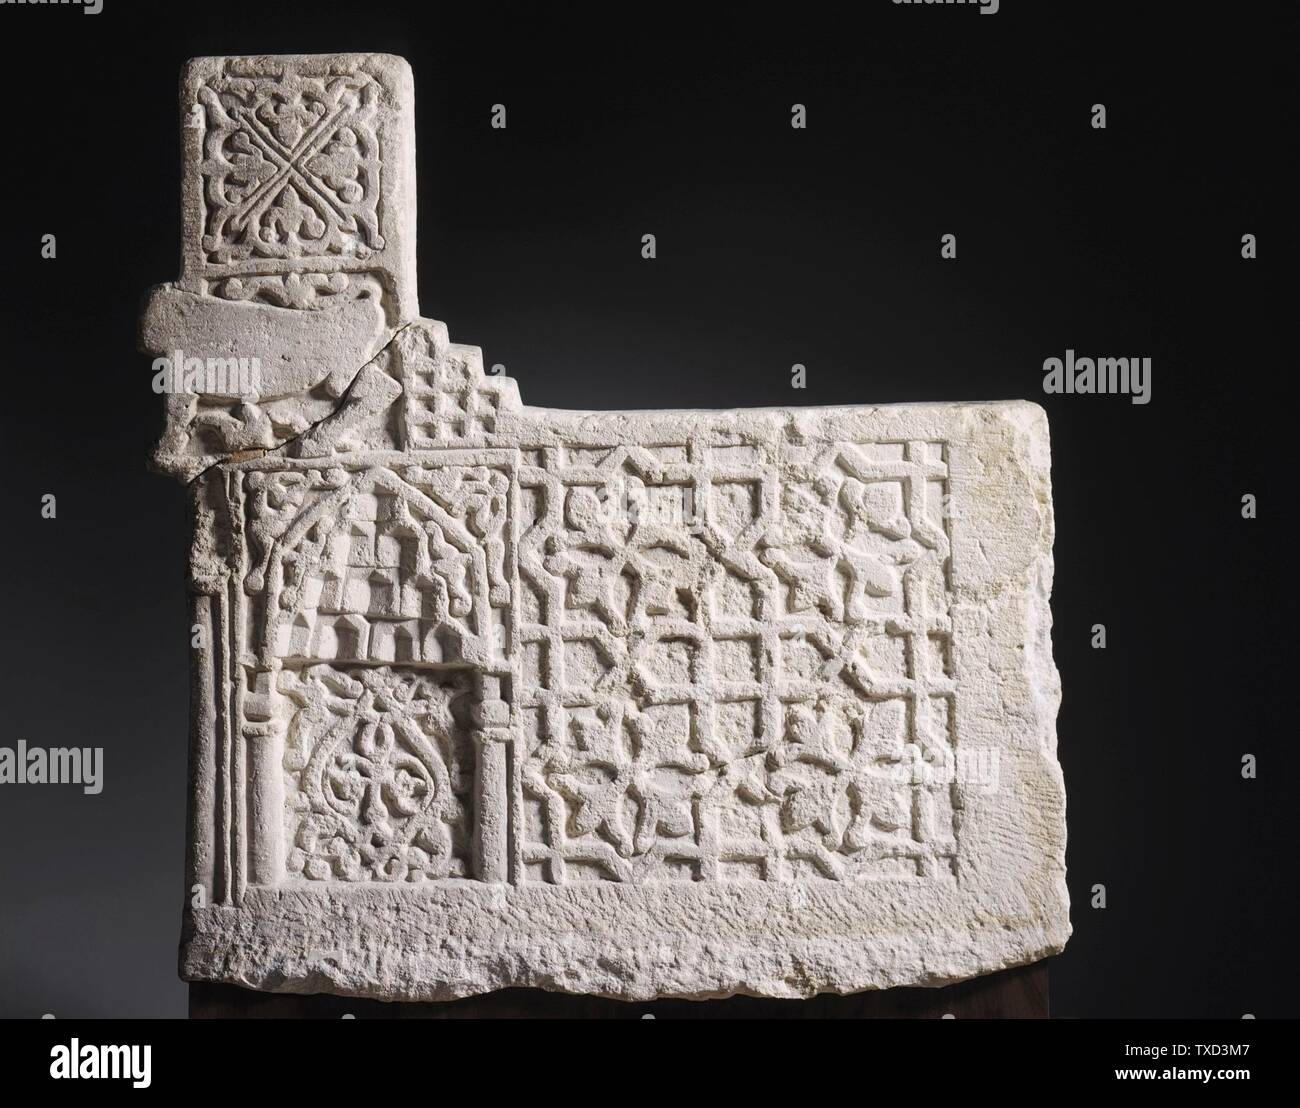 'Stair Riser (image 1 of 6); English:  Iran, 13th-early 14th century Architecture; Architectural Elements Limestone, carved The Nasli M. Heeramaneck Collection, gift of Joan Palevsky (M.73.5.5) Islamic Art Currently on public view: Ahmanson Building, floor 4; 13th-early 14th century; ' - Stock Image